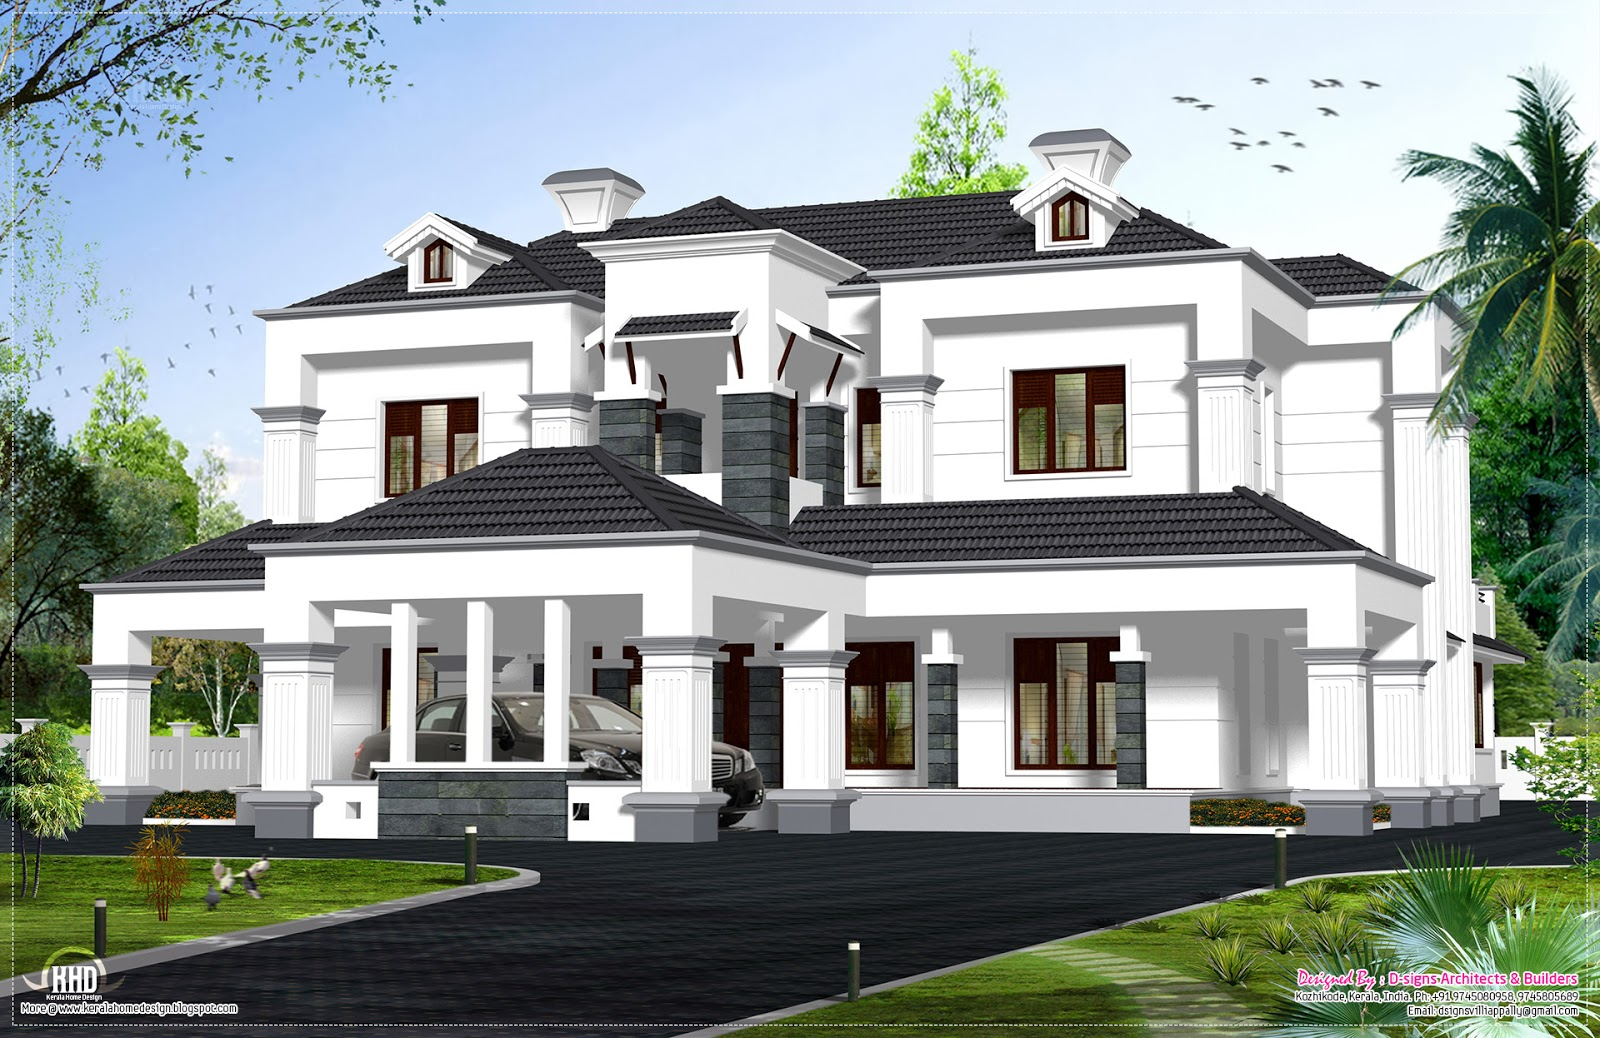 Victorian model house exterior kerala home design and floor plans - Kerala exterior model homes ...